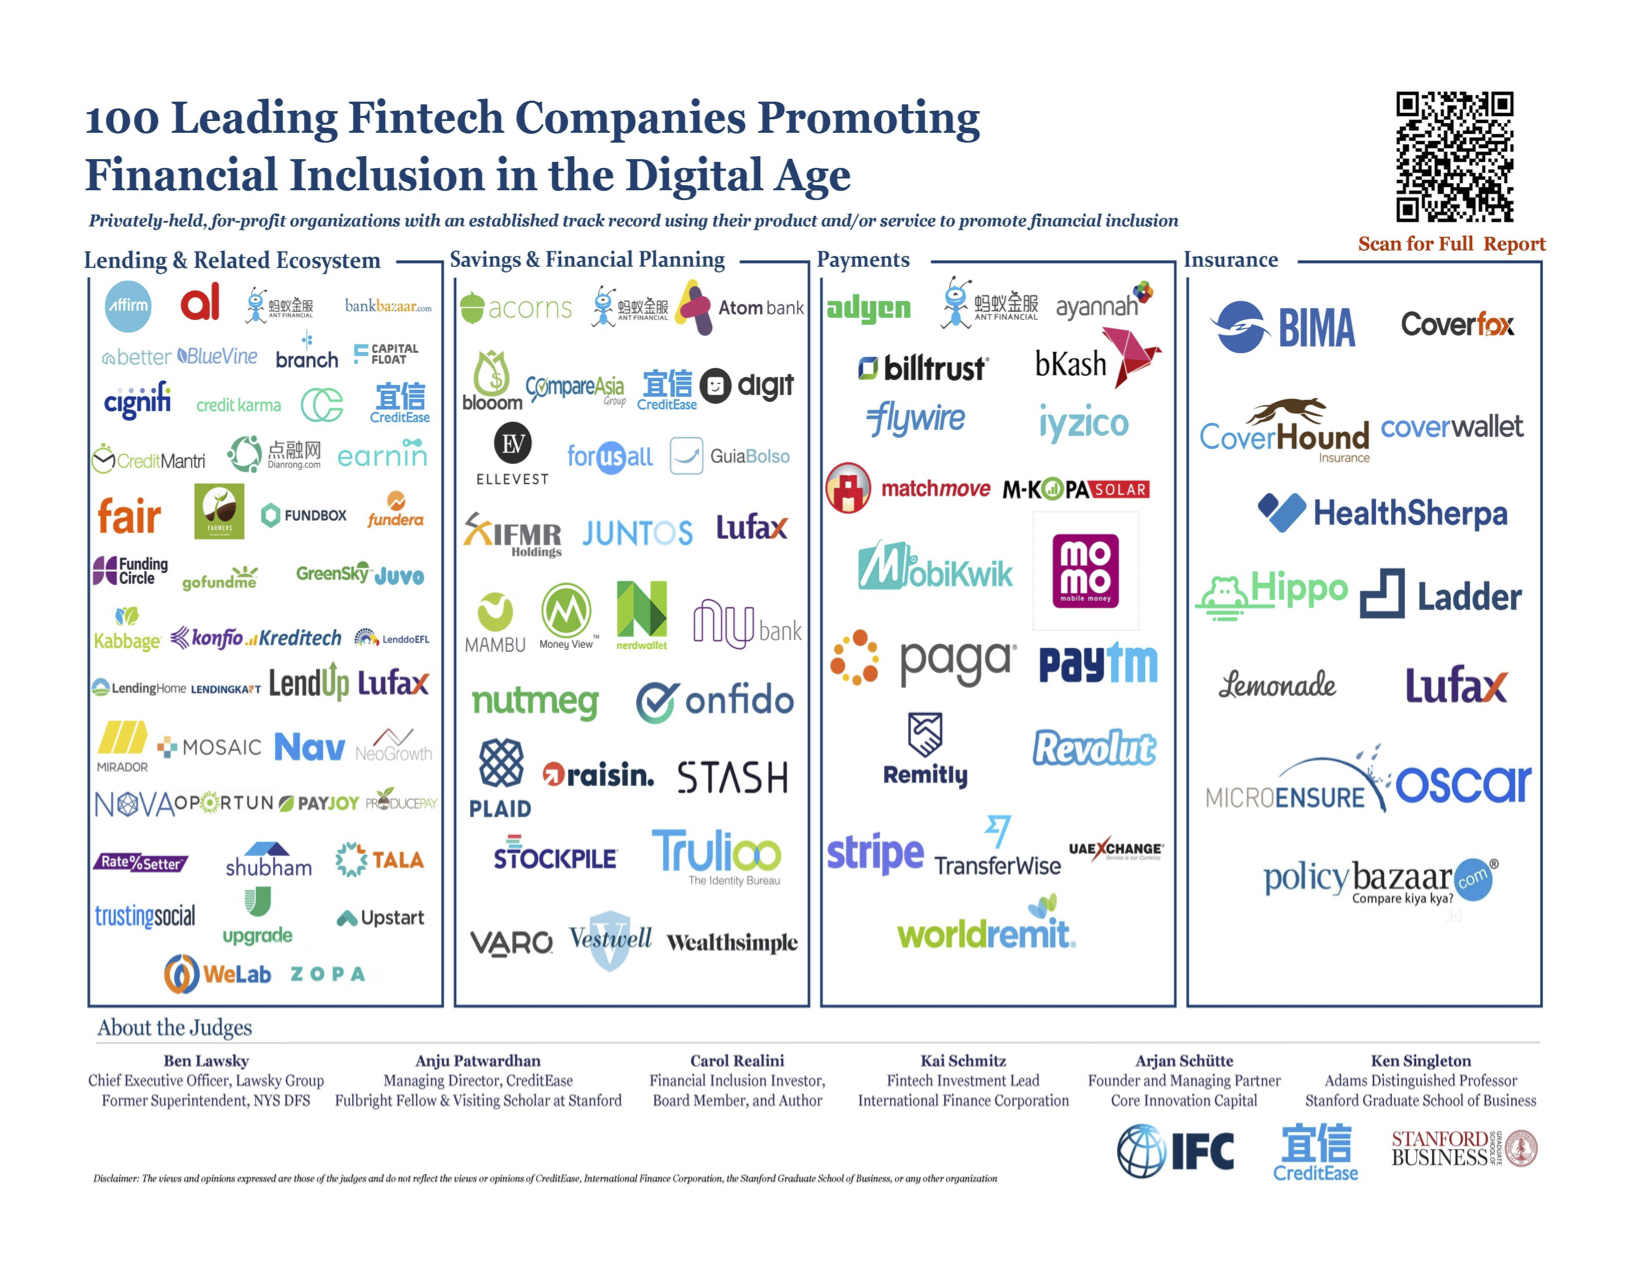 100 Leading Fintechs Promoting Financial Inclusion